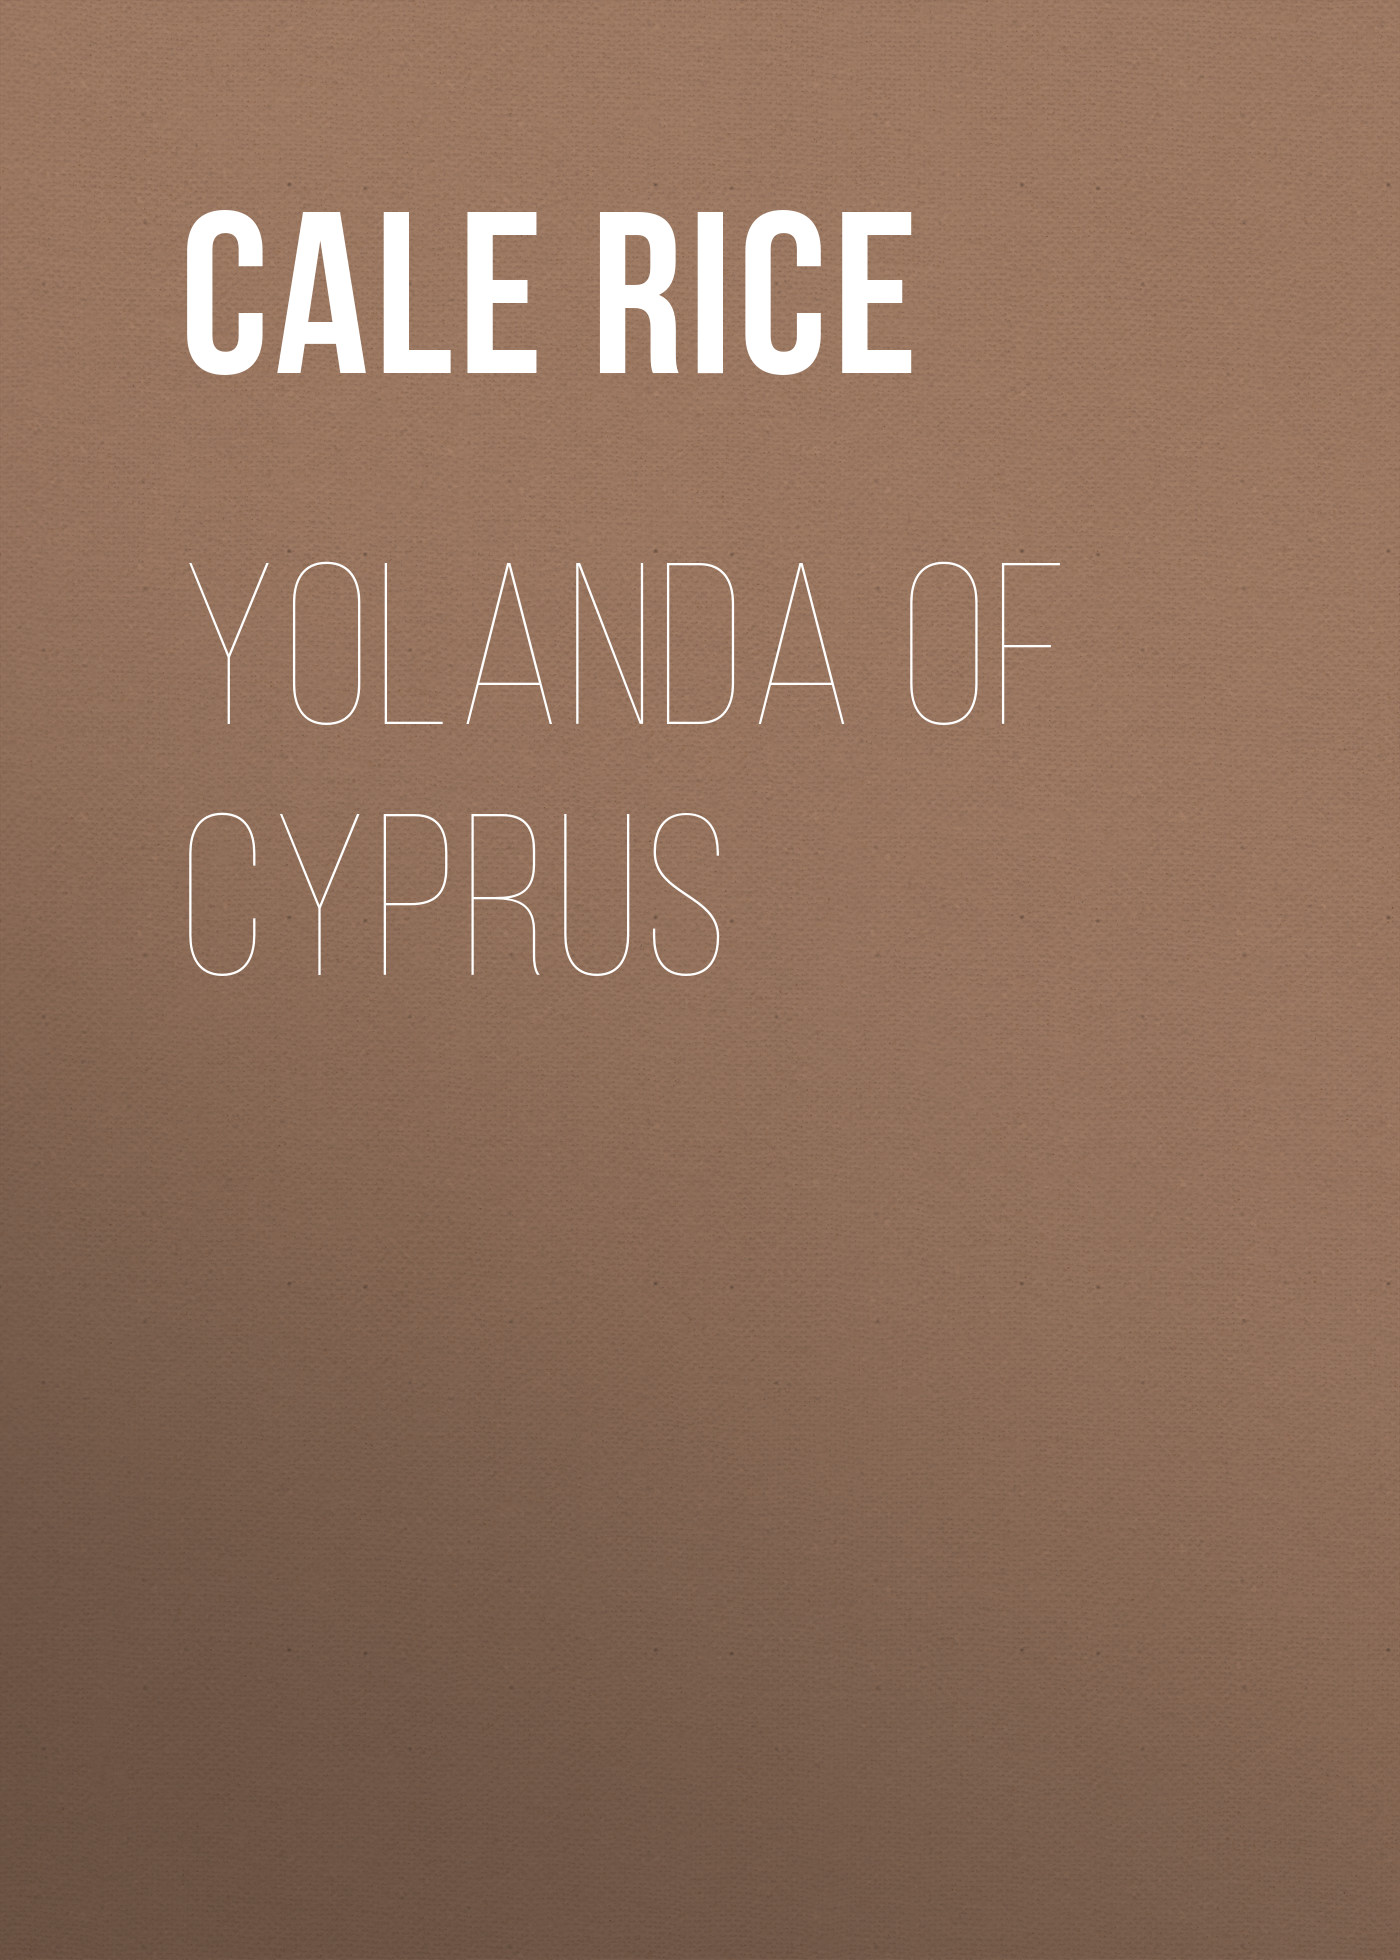 Rice Cale Young Yolanda of Cyprus cale young rice porzia